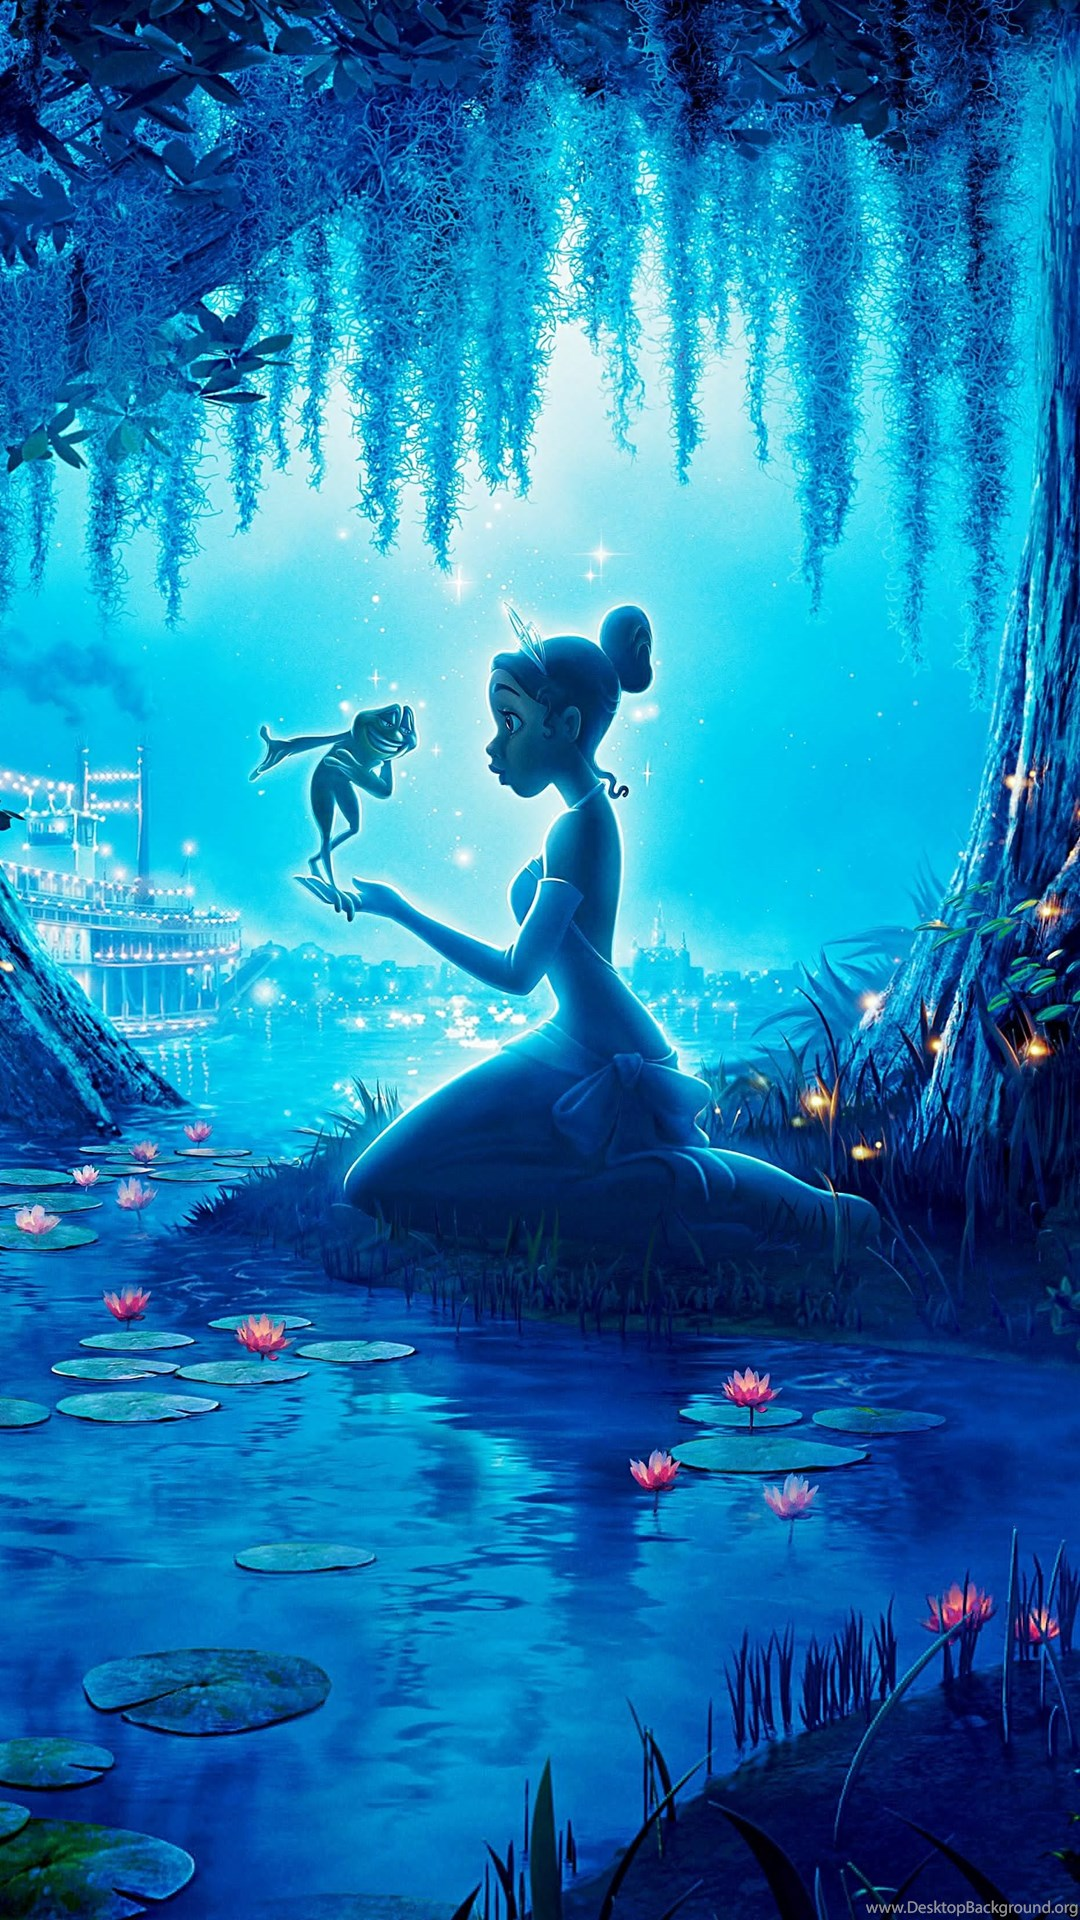 Princess And The Frog Animation Disney Family Fantasy